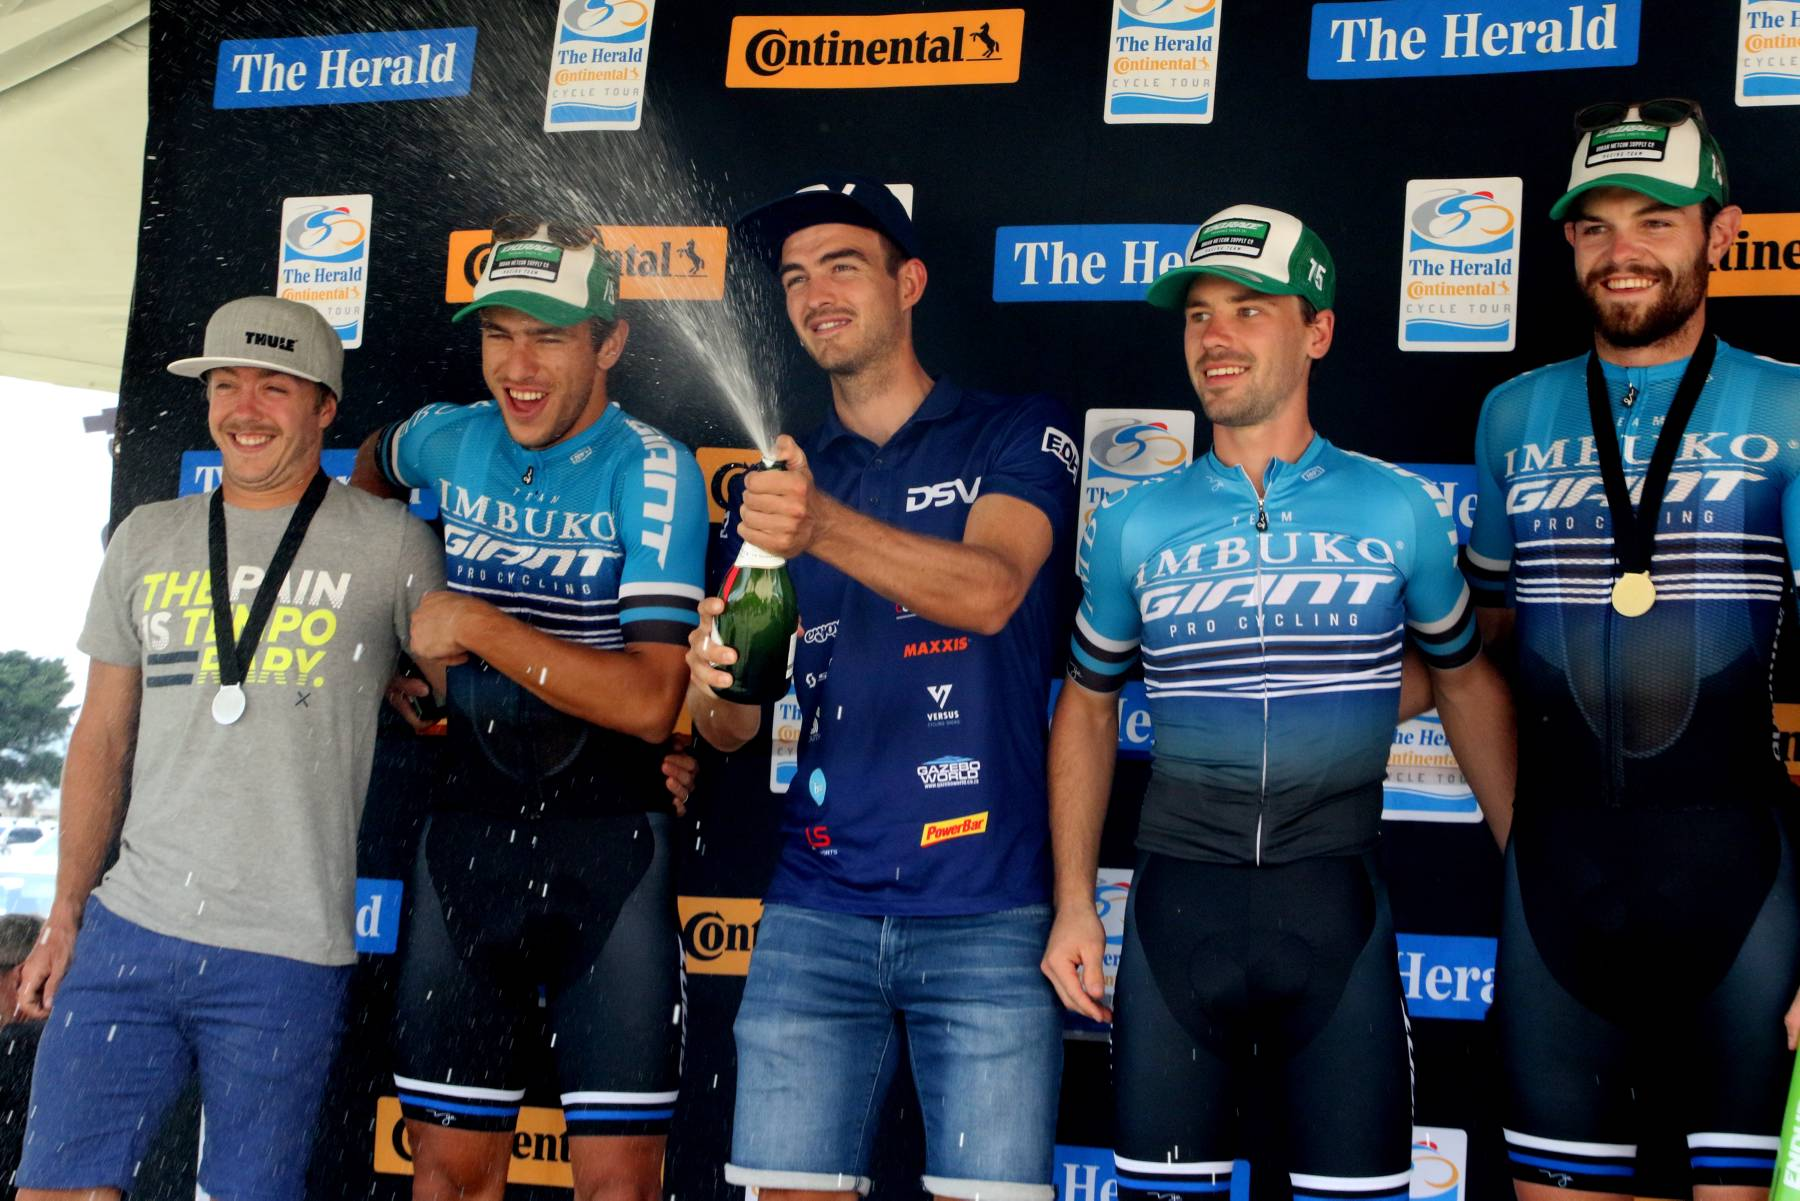 The Herald Continental Cycle Tour MTB 80km Extreme Mens Winners 2019.jpg